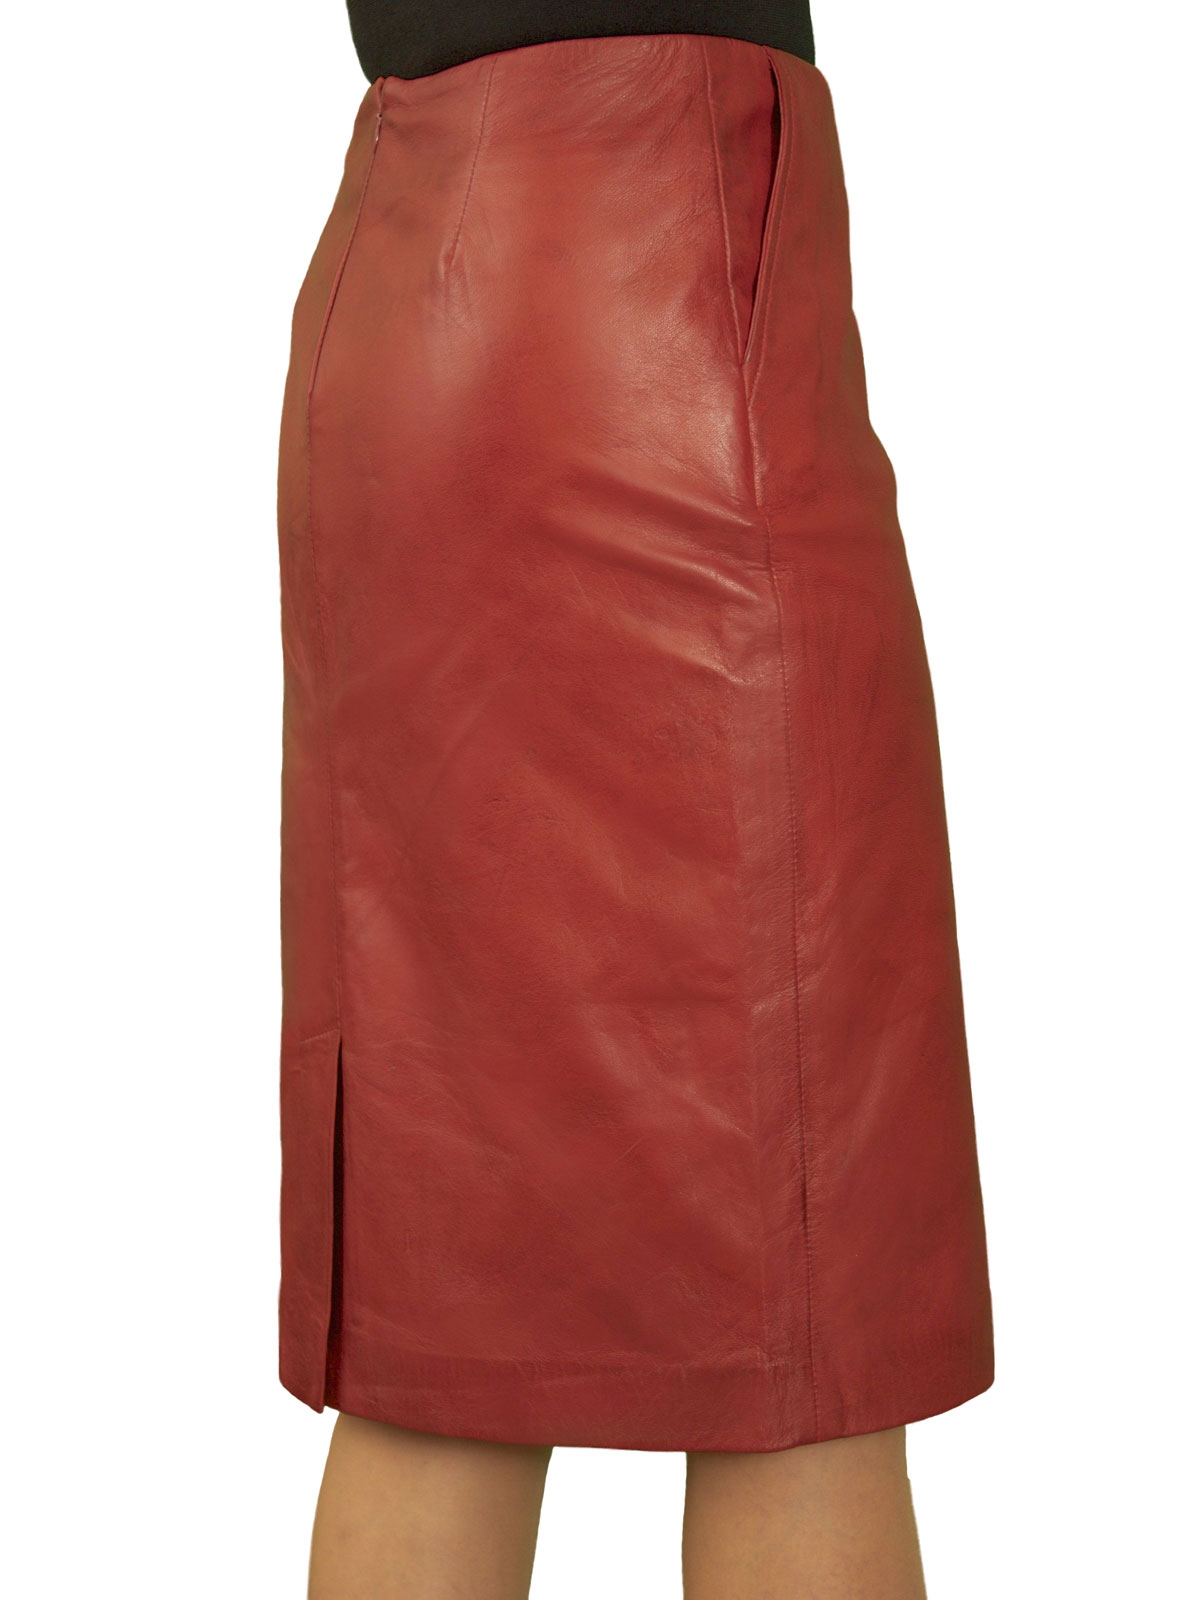 Leather Pencil Skirt, luxury soft, knee length